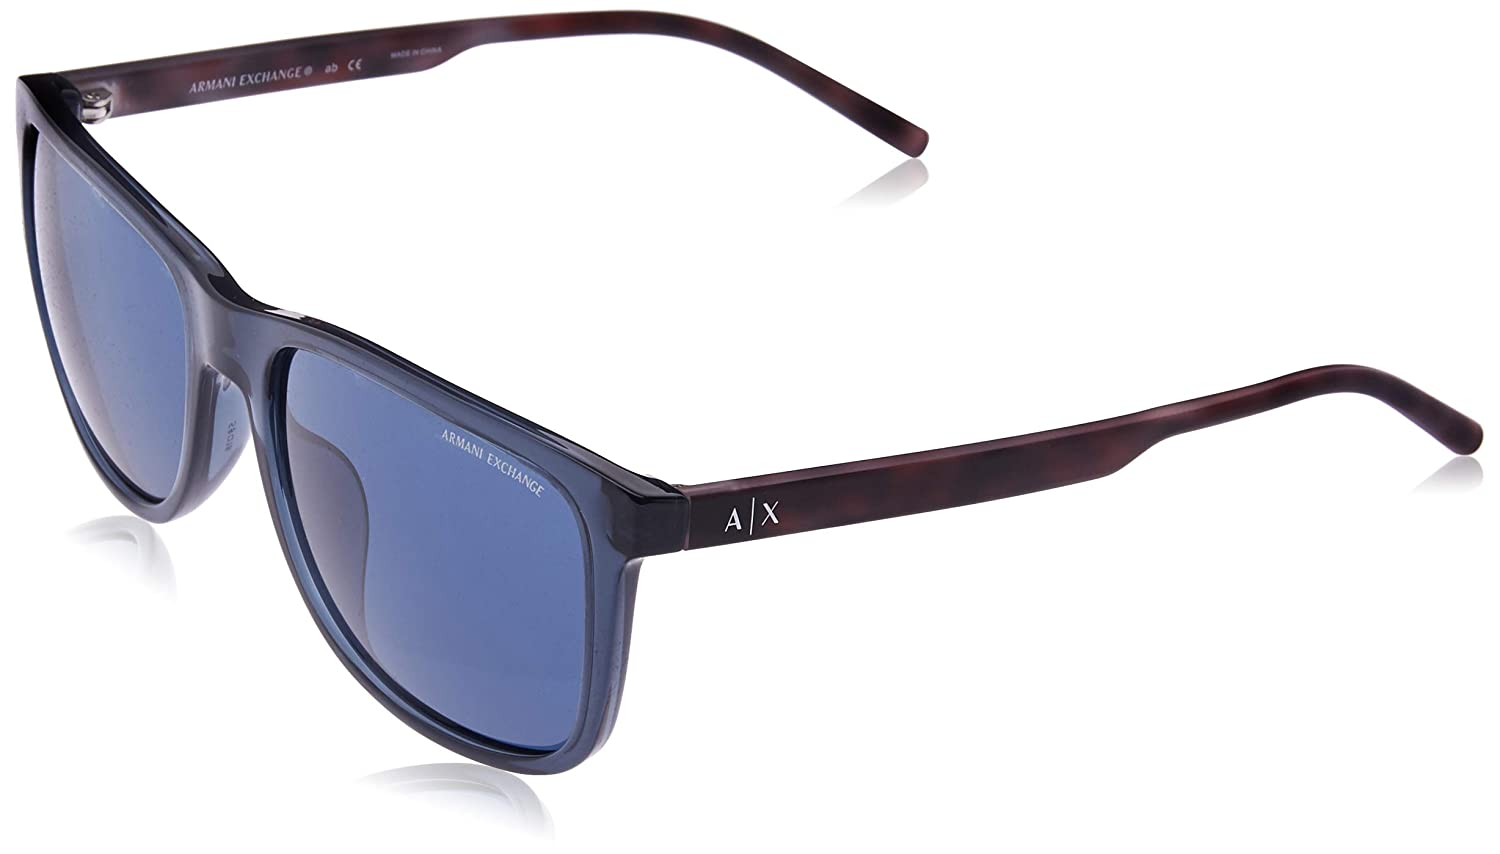 Amazon.com: Armani Exchange Mens Injected Man Sunglass ...